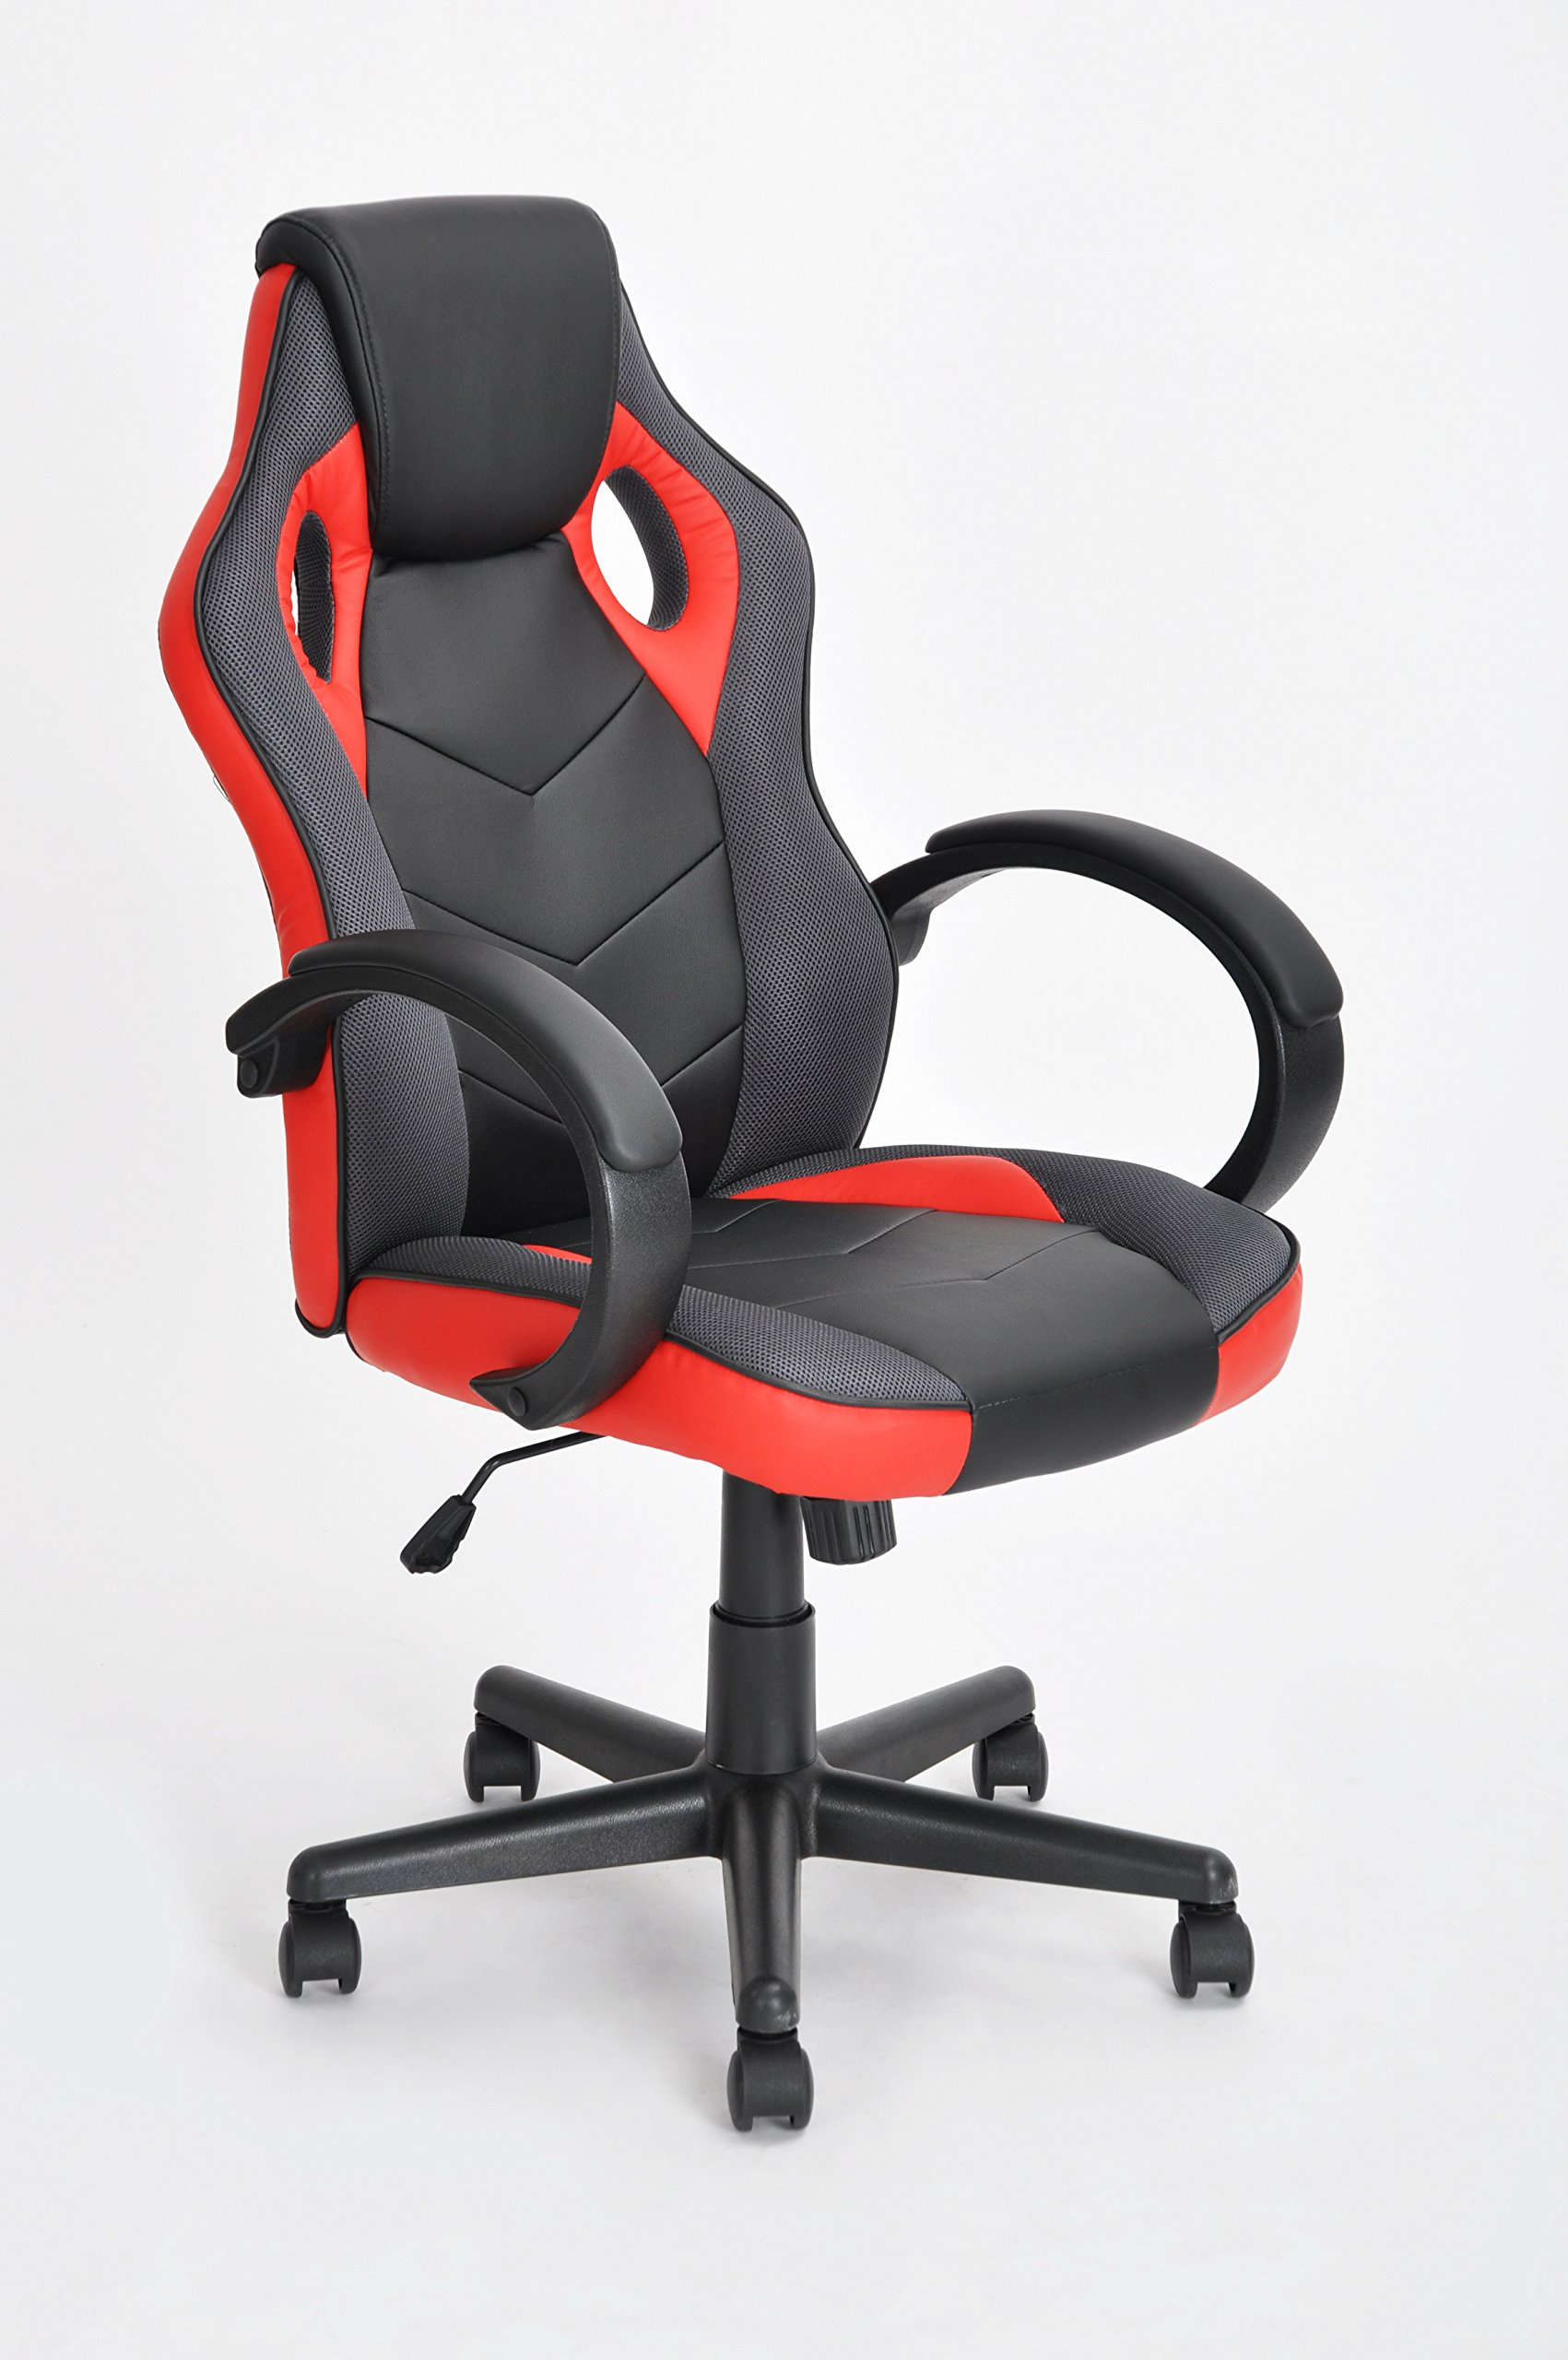 Executive Racing Style Office Chair Pu Leather Swivel Computer Desk Seat High Back Gaming In Black And Red Price On M Alibaba